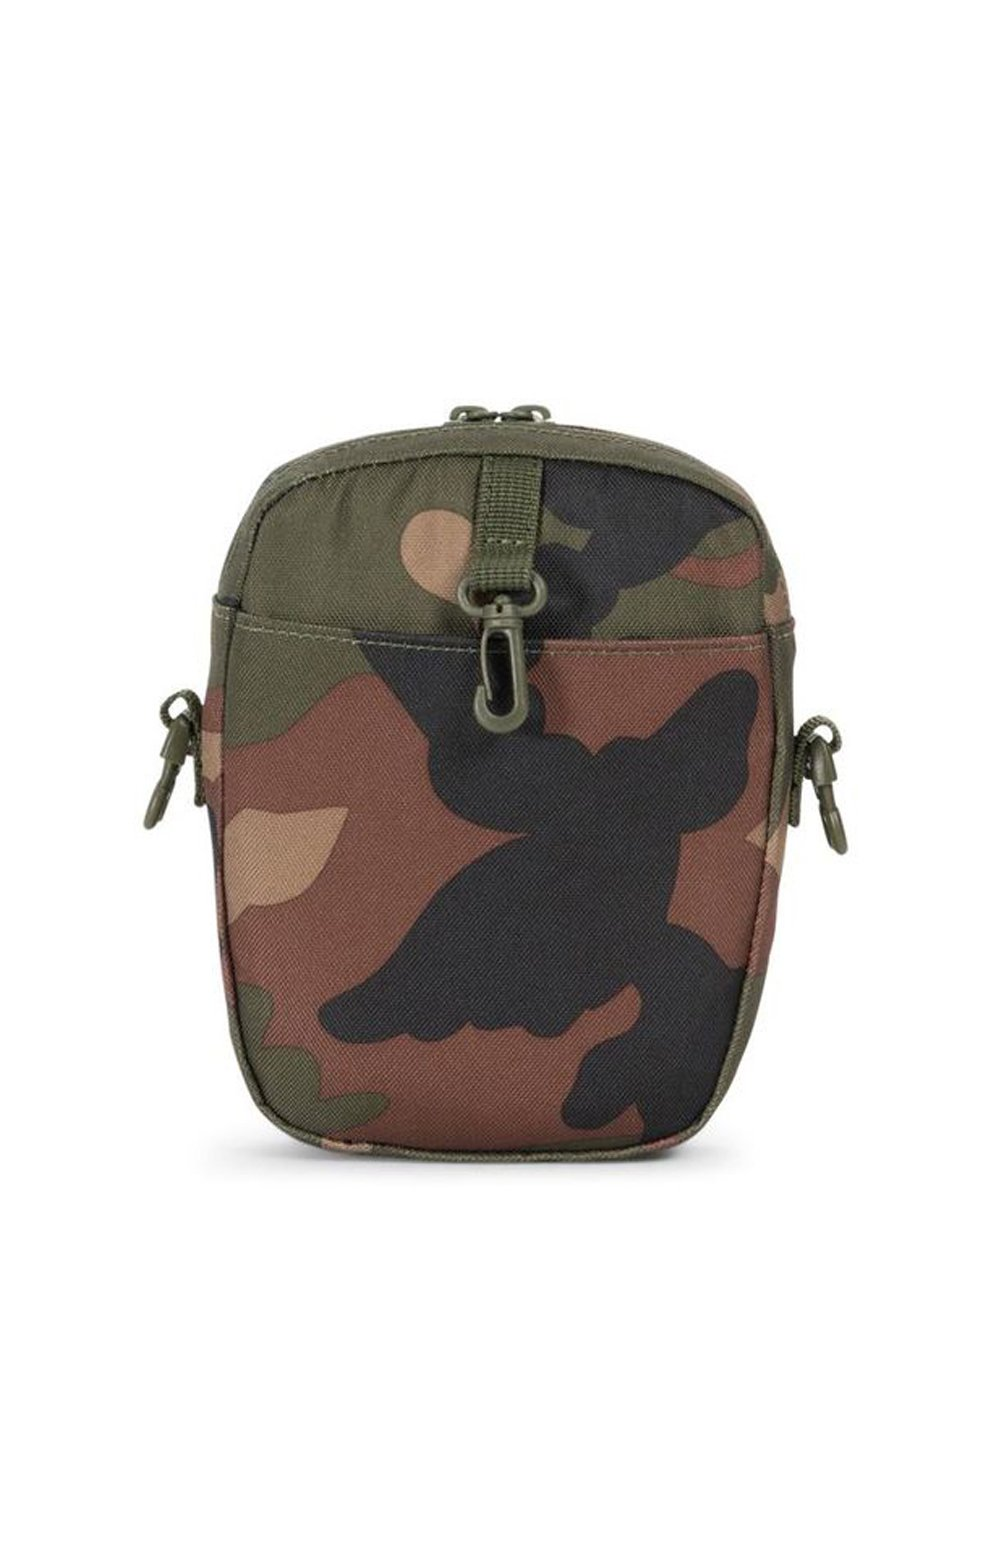 Cruz Crossbody Bag - Woodland Camo 3